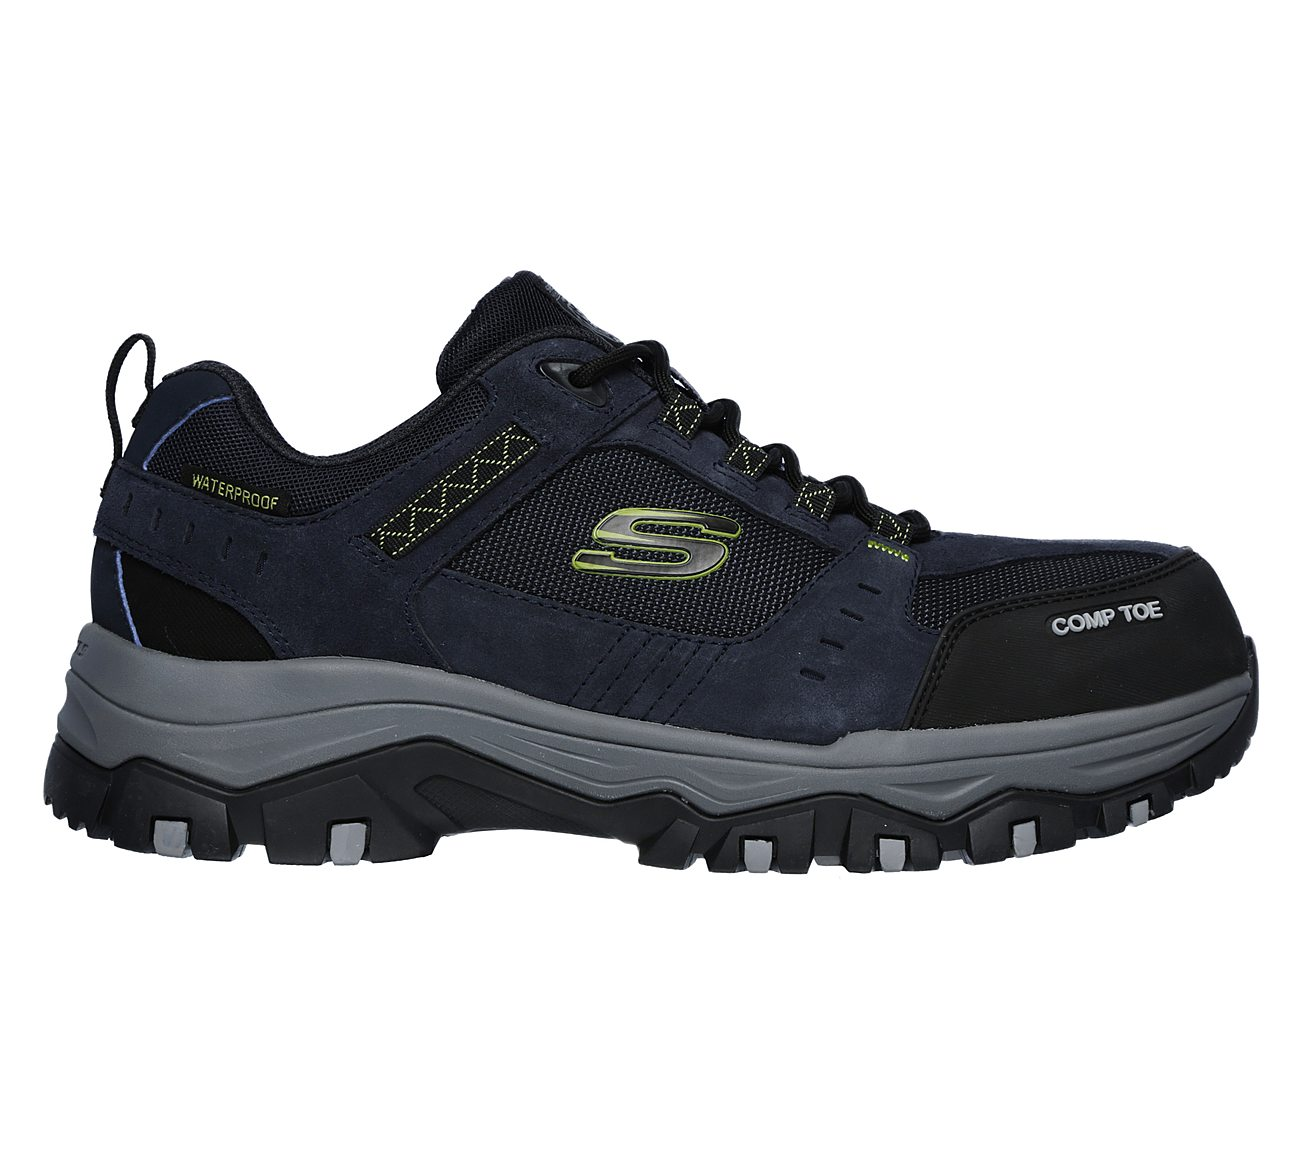 Buy SKECHERS Work Sicherheitsschuh: Greetah Comp Toe Work Shoes kytgG